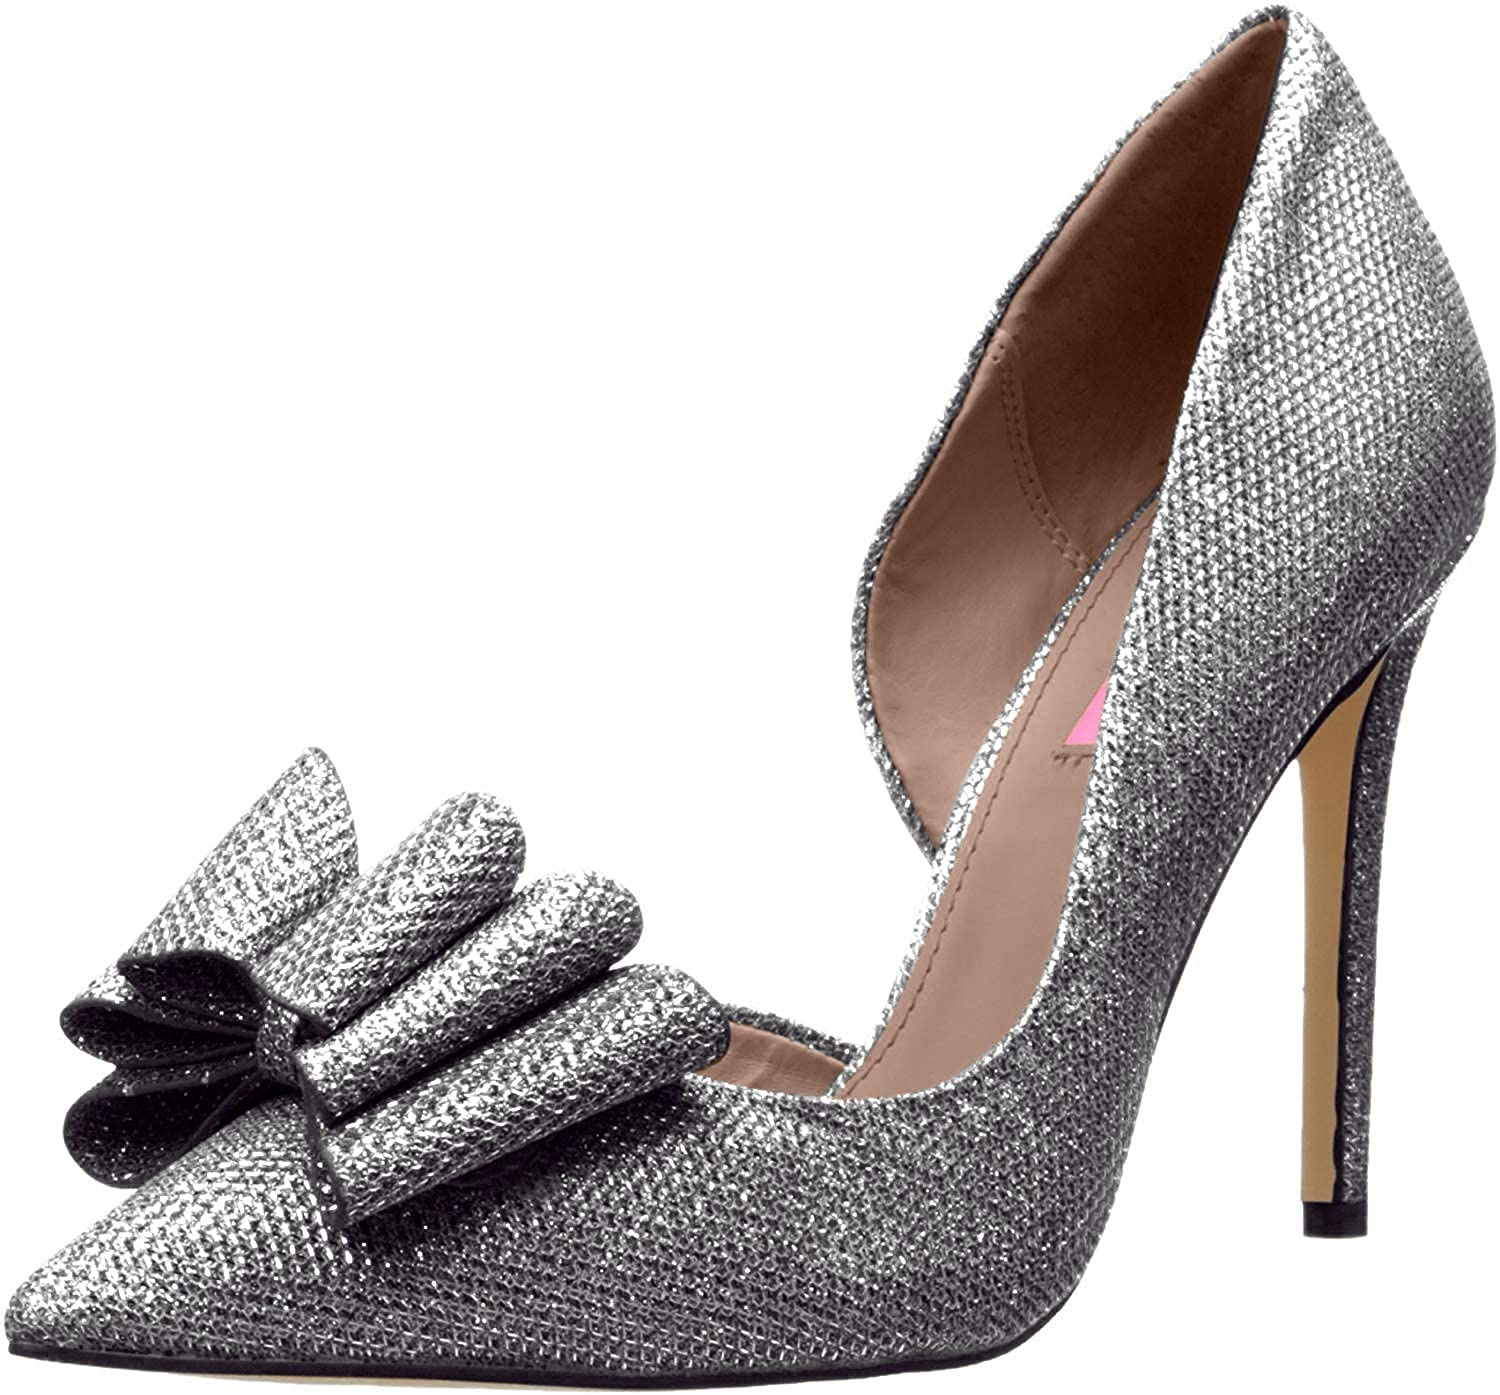 Betsey Johnson Women's Lowest price challenge PRINCE d'Orsay Pump 1 year warranty